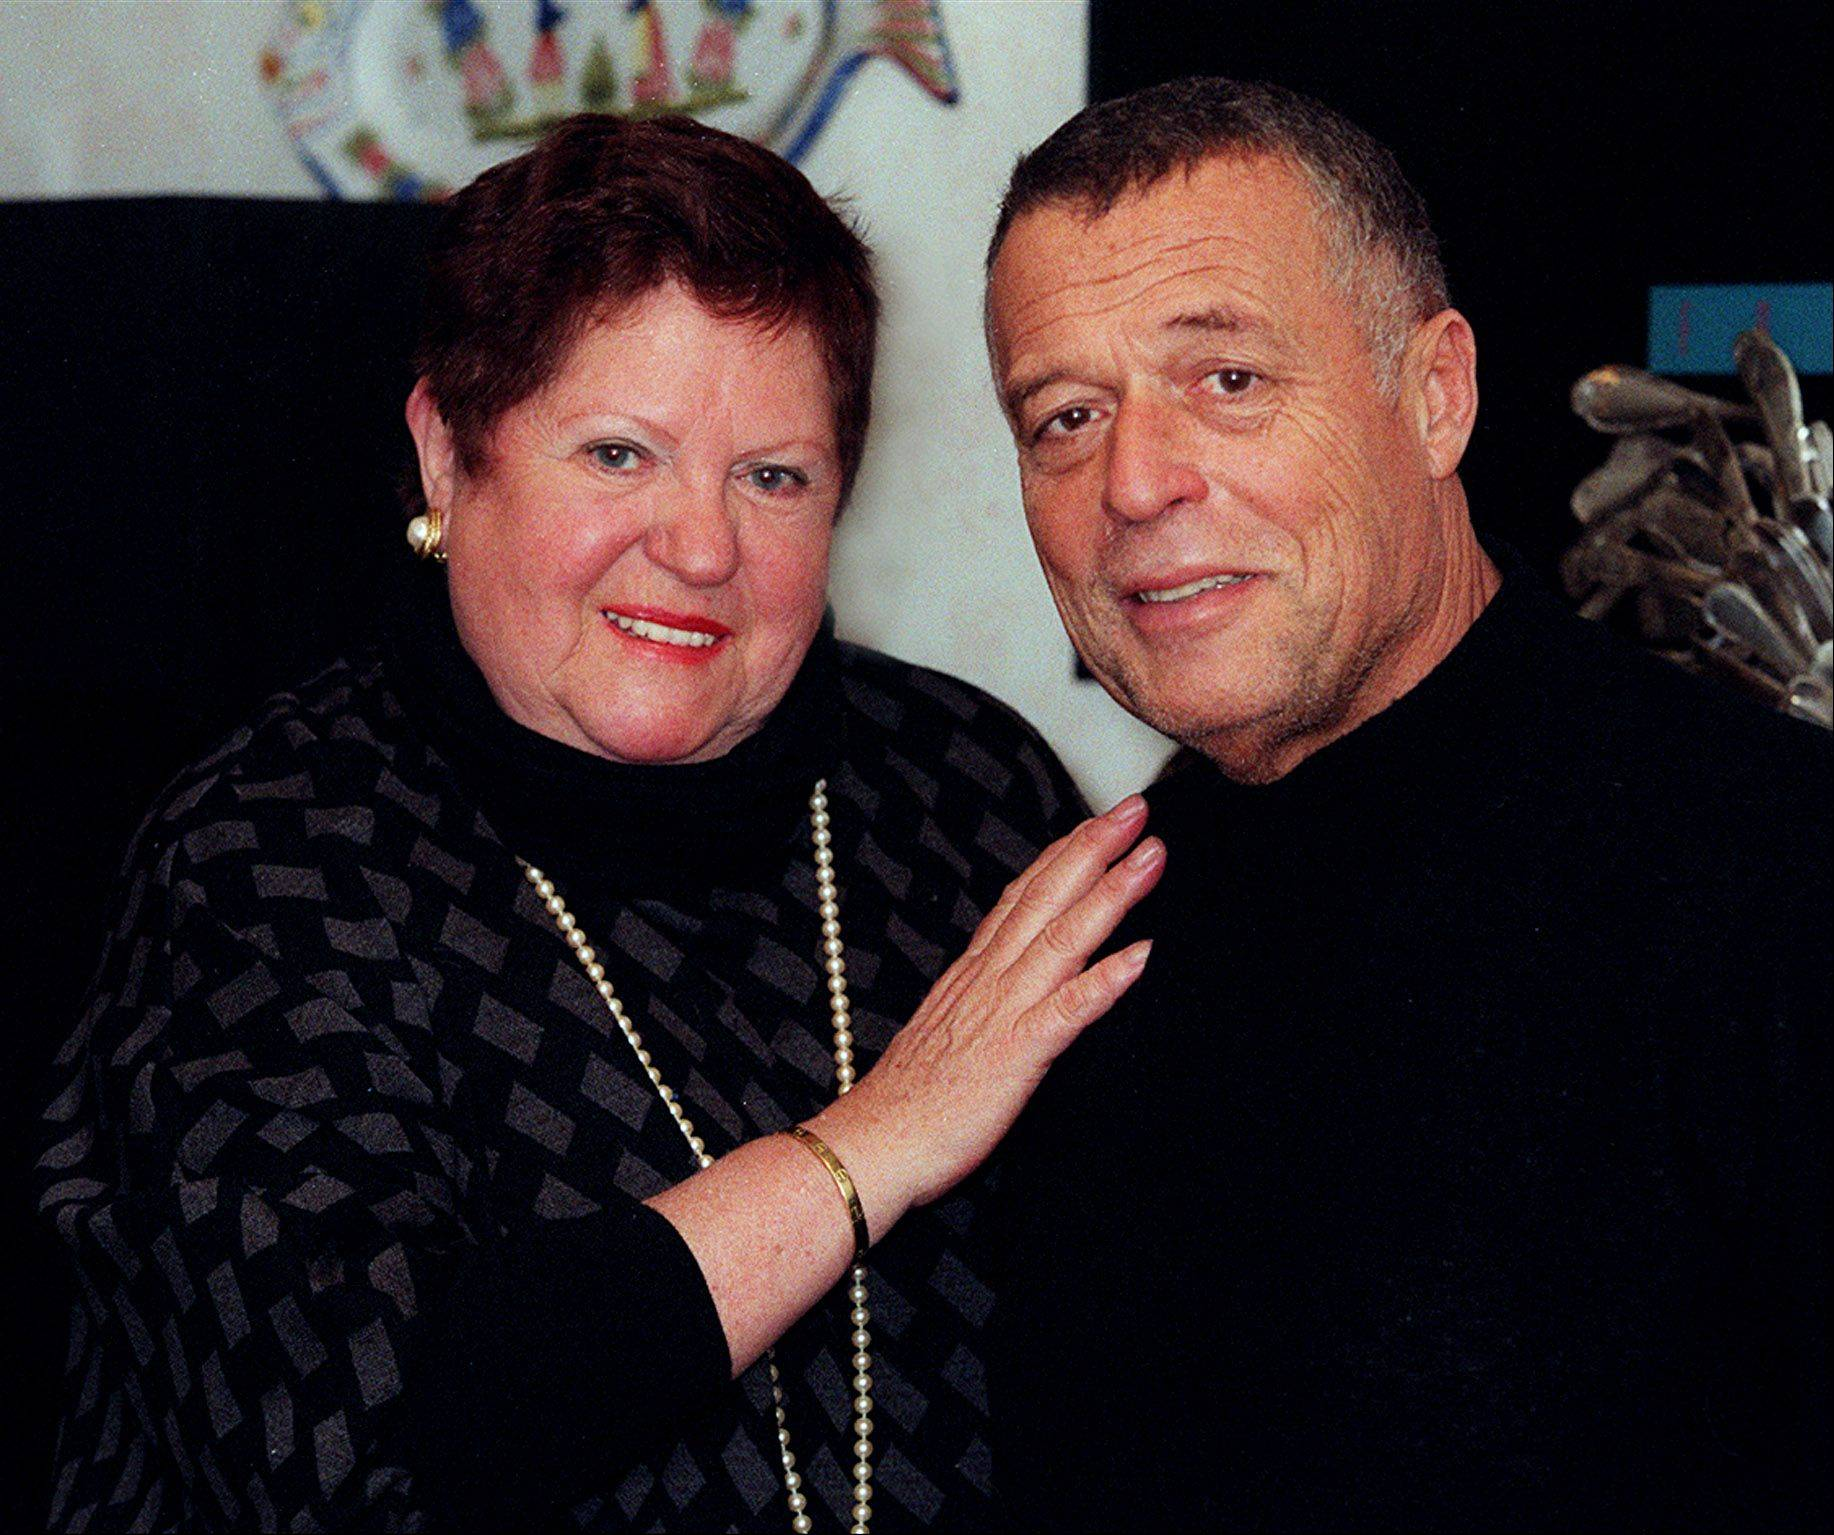 Chef Jean Banchet with his wife, Doris. The acclaimed chef died Sunday in Florida with his wife at his side.